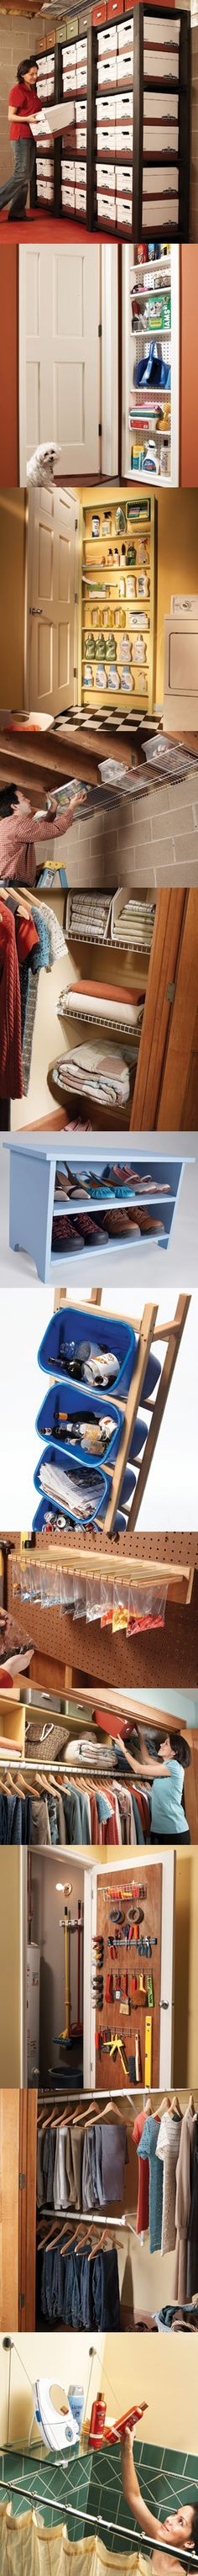 Need more room for your stuff? Learn 12 new solutions for storage space problems—everything from hidden shelves to shoe racks to recycling towers and more. Get inspiration at http://www.familyhandyman.com/DIY-Projects/Home-Organization/Storage-Tips/12-simple-storage-solutions